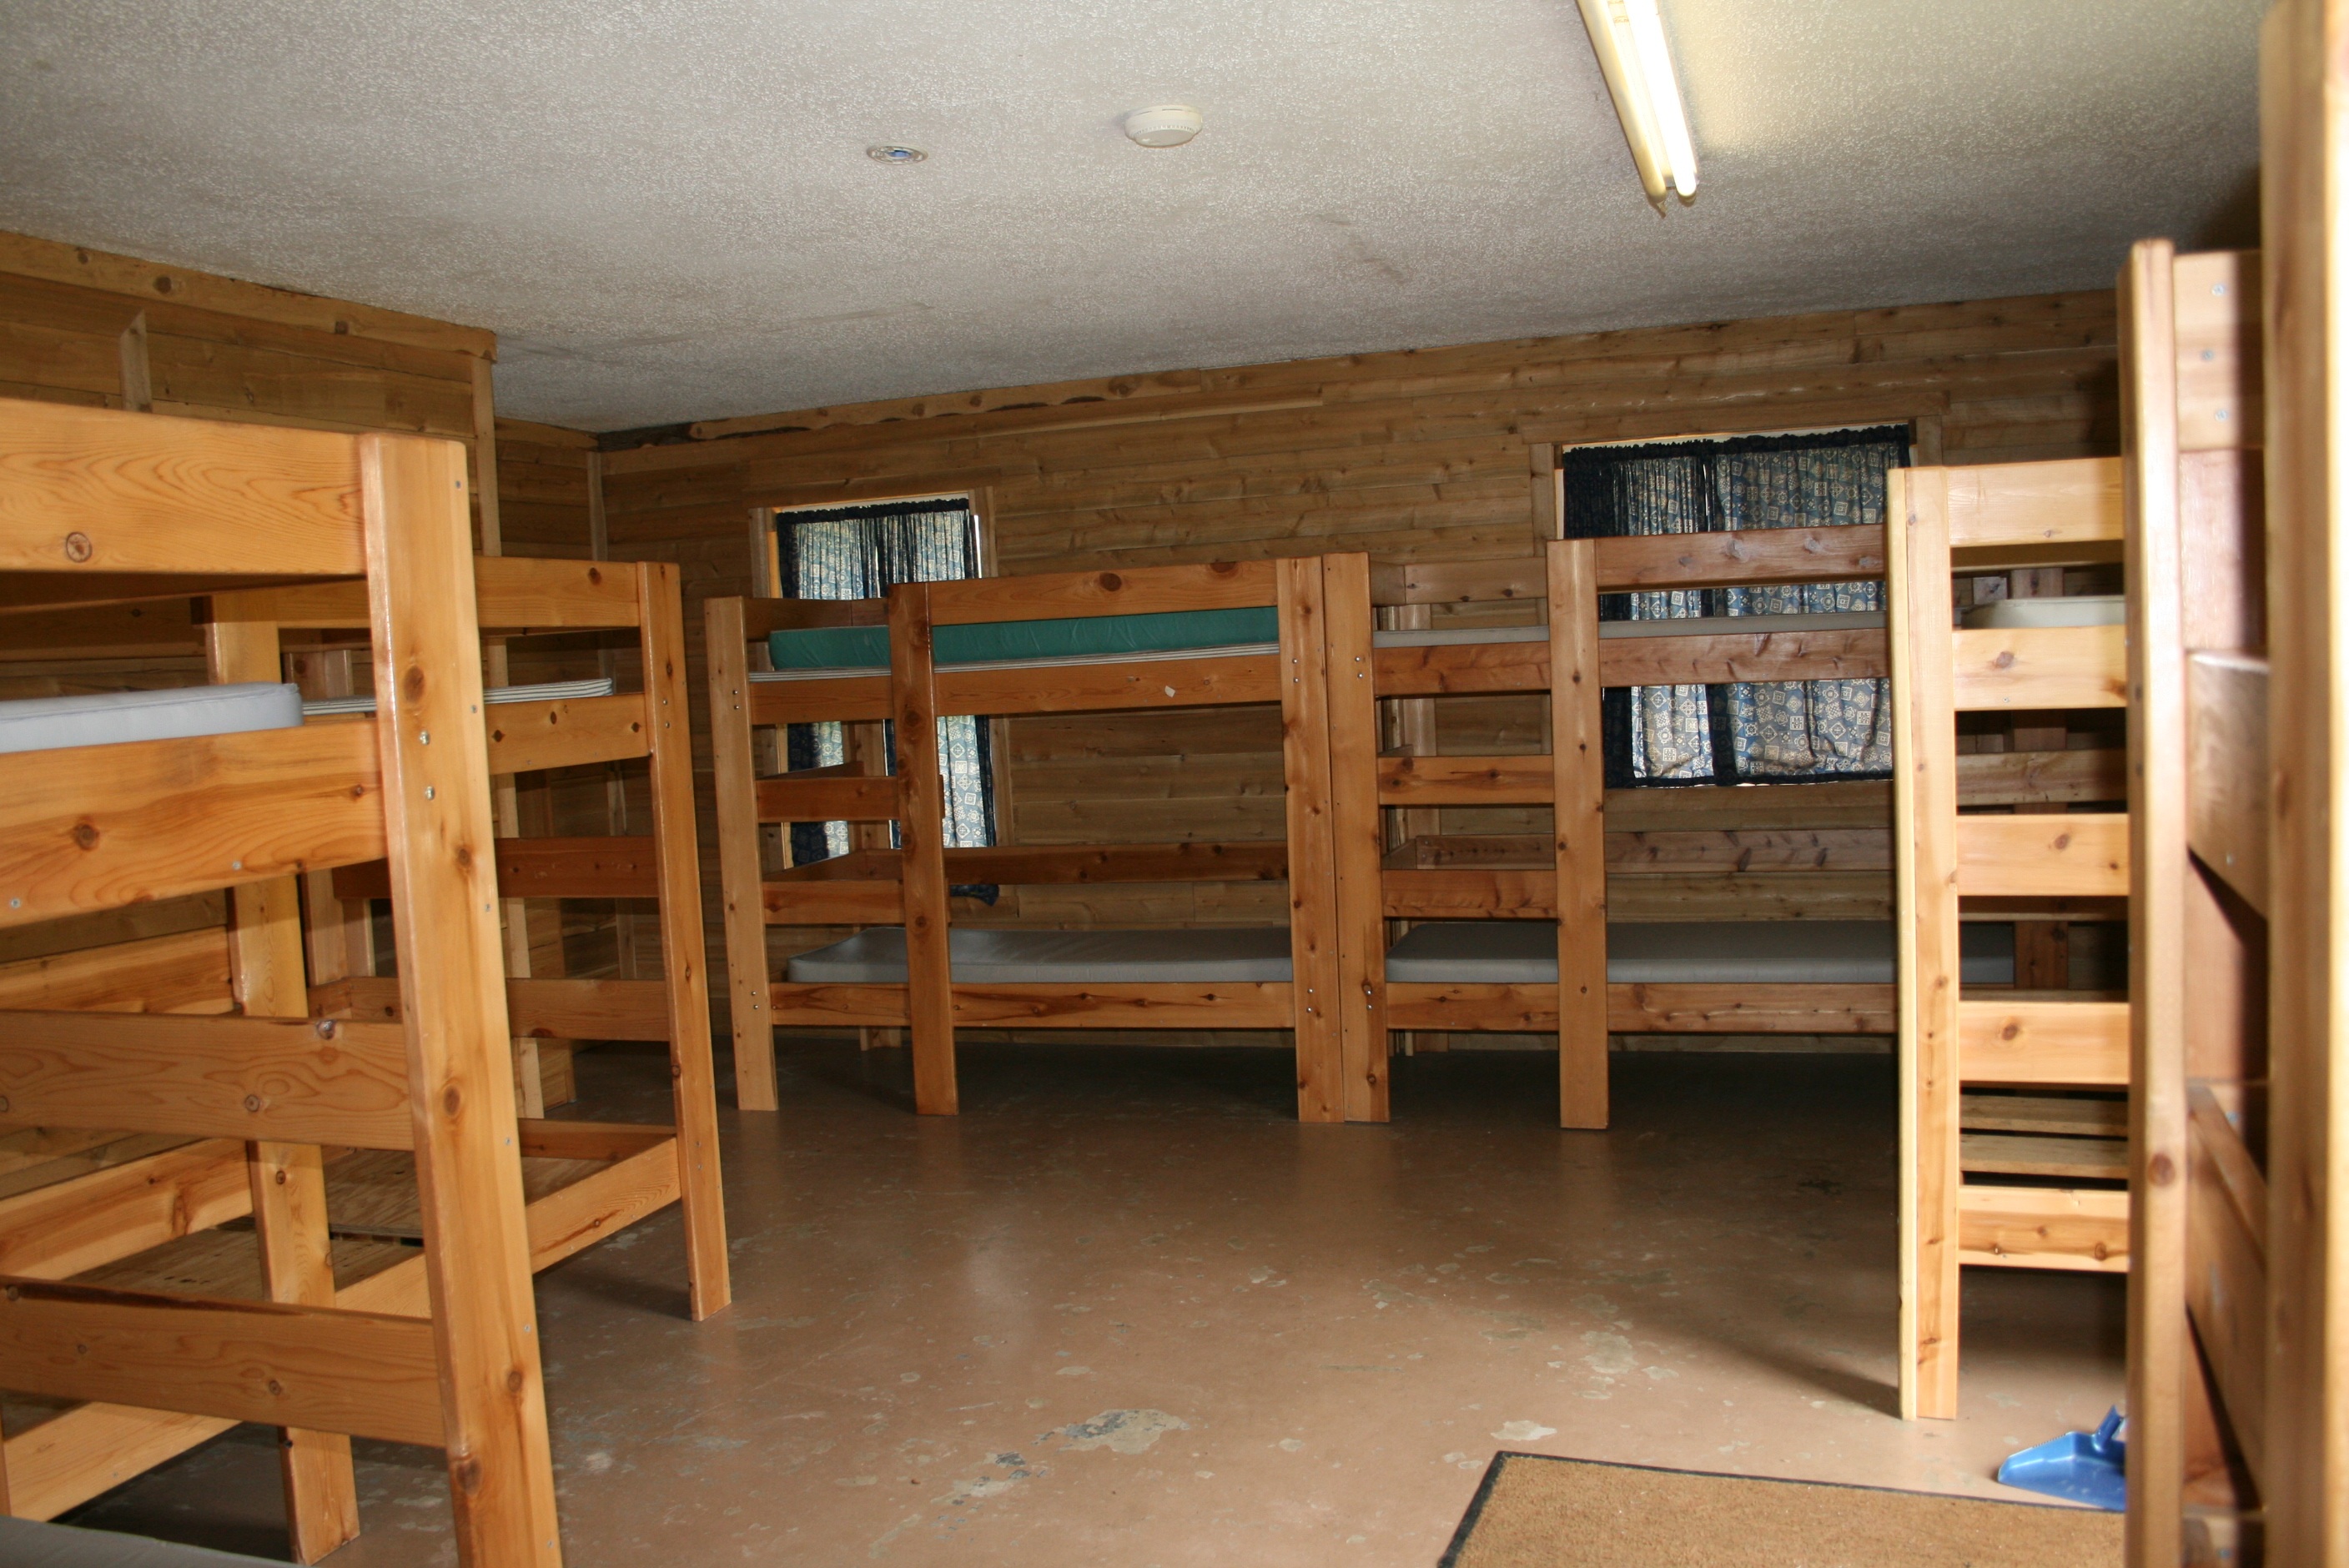 Housing Summer camp cabins